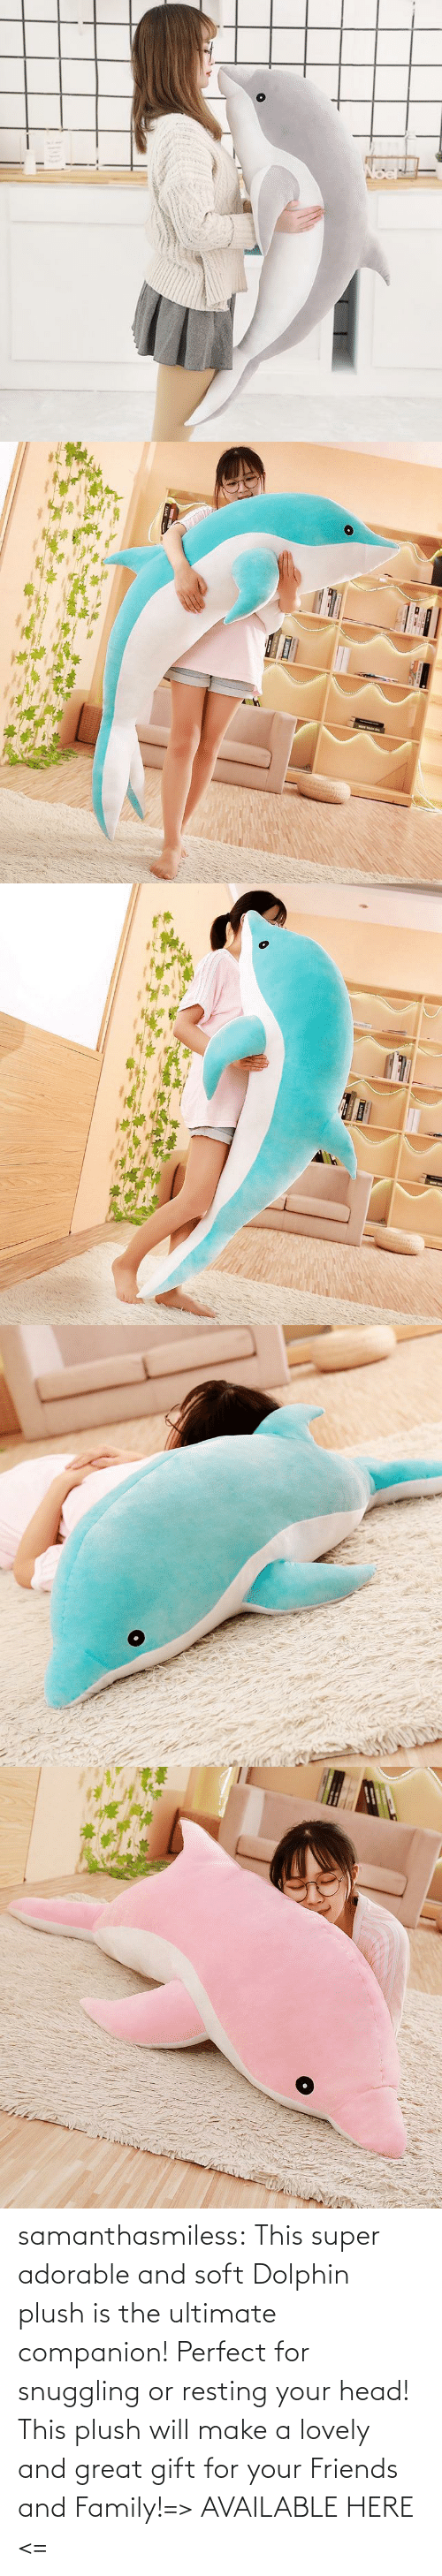 Family, Friends, and Head: samanthasmiless:  This super adorable and soft Dolphin plush is the ultimate companion! Perfect for snuggling or resting your head! This plush will make a lovely and great gift for your Friends and Family!=> AVAILABLE HERE <=